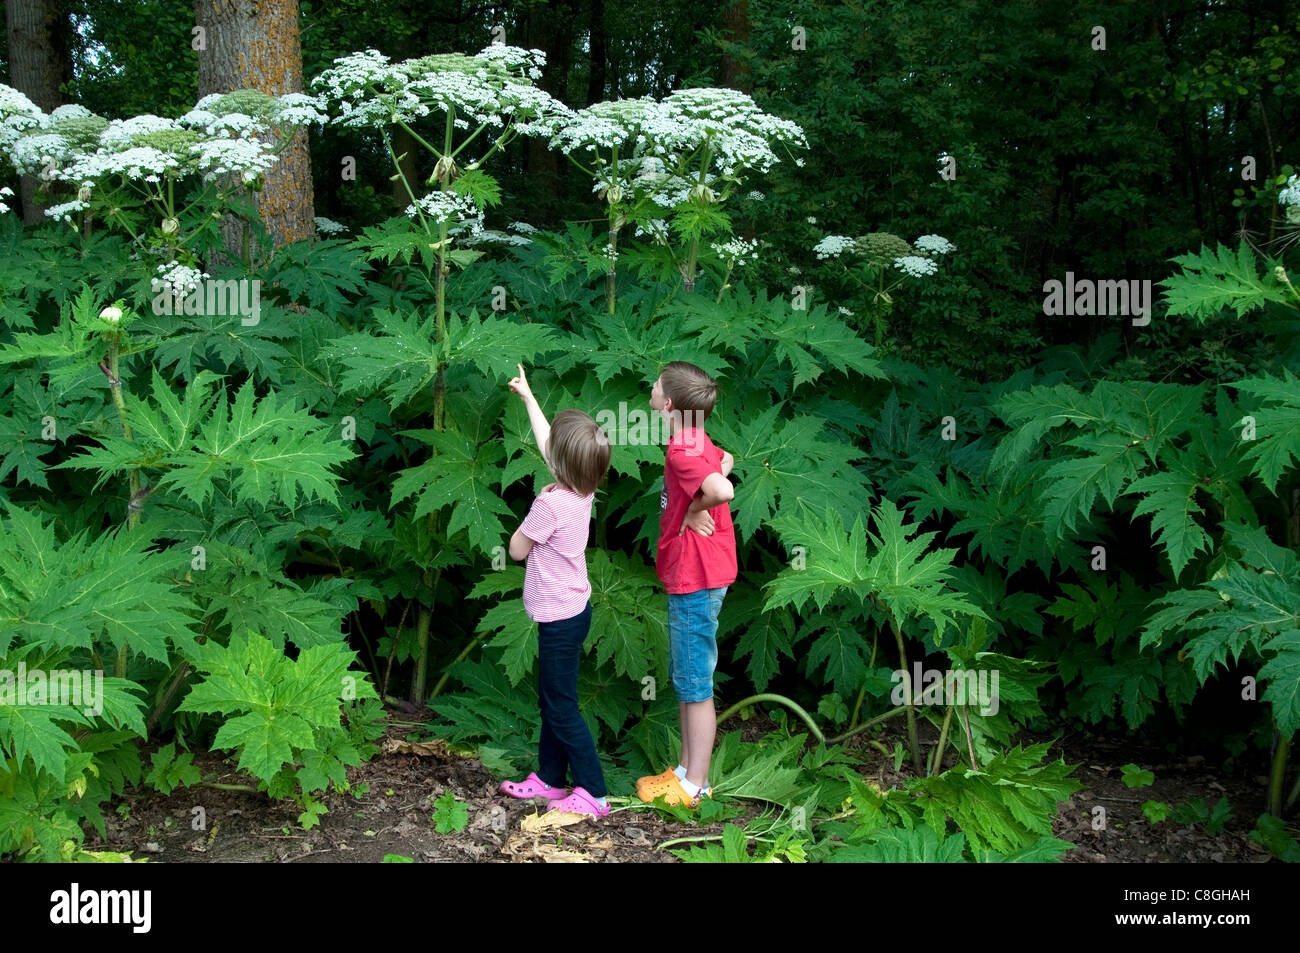 Children looking at Giant Hogweed (Heracleum mantegazzianum). Stock Photo